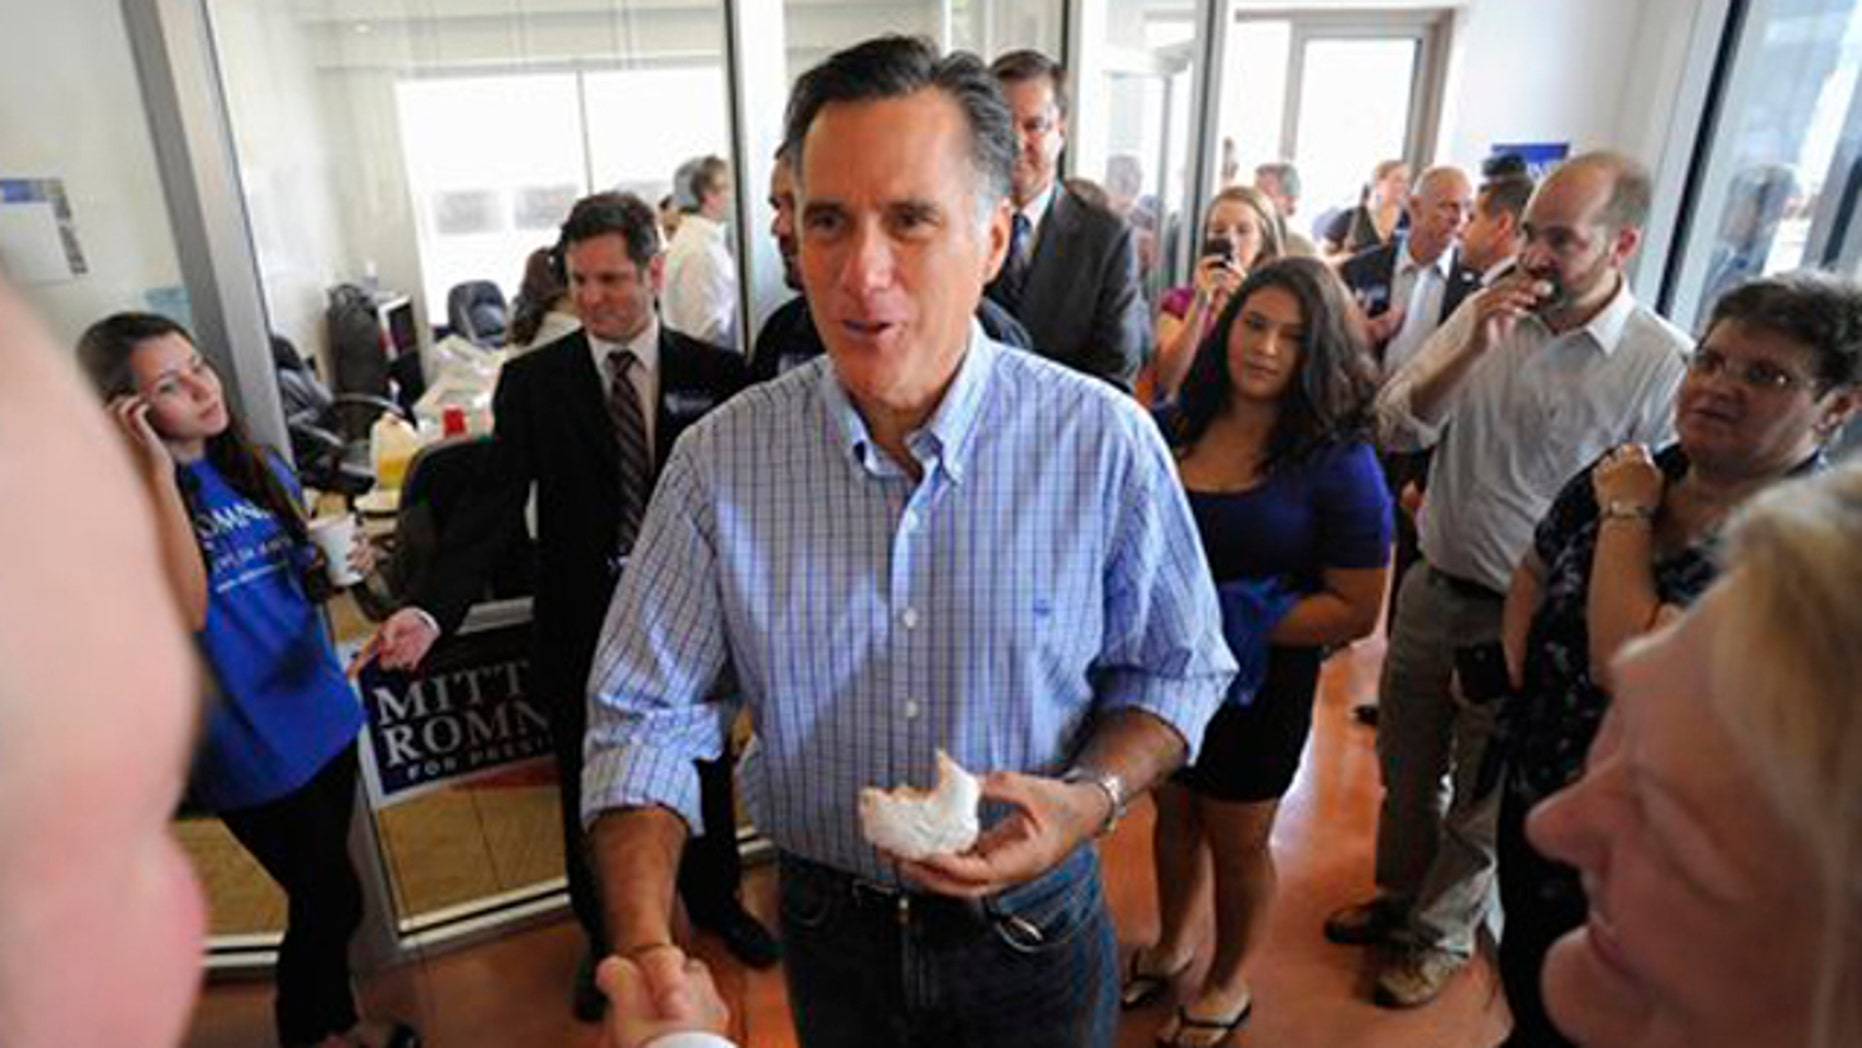 Former Massachusetts Gov. Mitt Romney meets with campaign staffers and supporters as he tours his new Florida campaign headquarters in Tampa, Fla., Sept. 2.